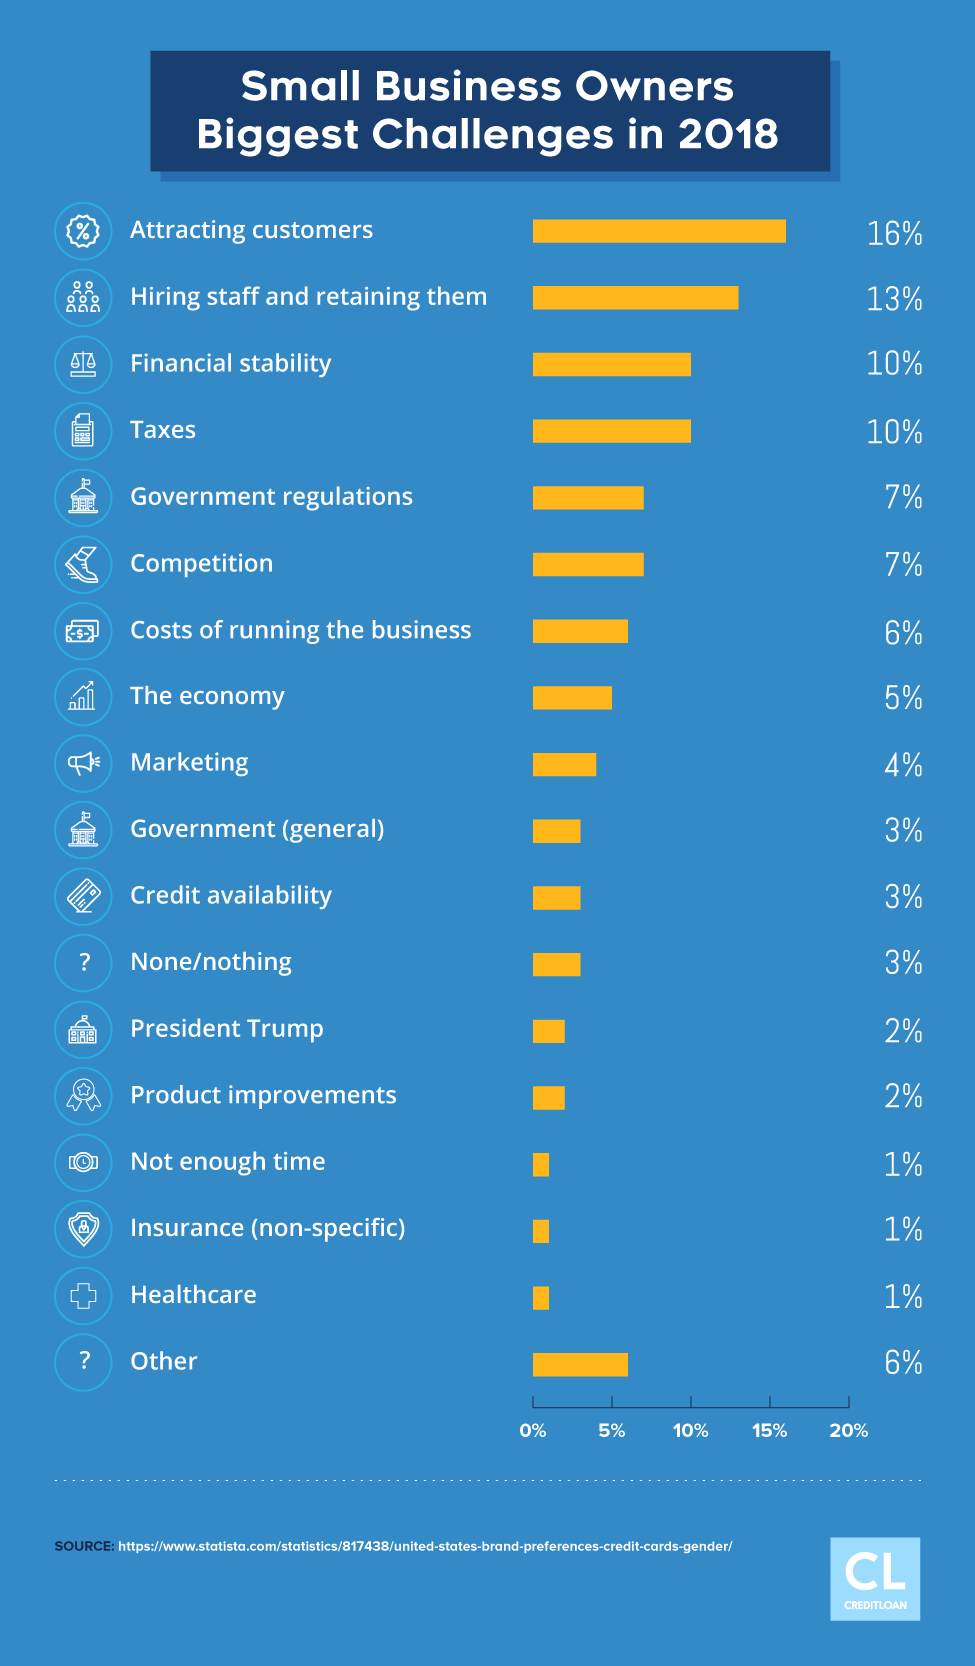 Small Business Owners Biggest Challenges in 2018